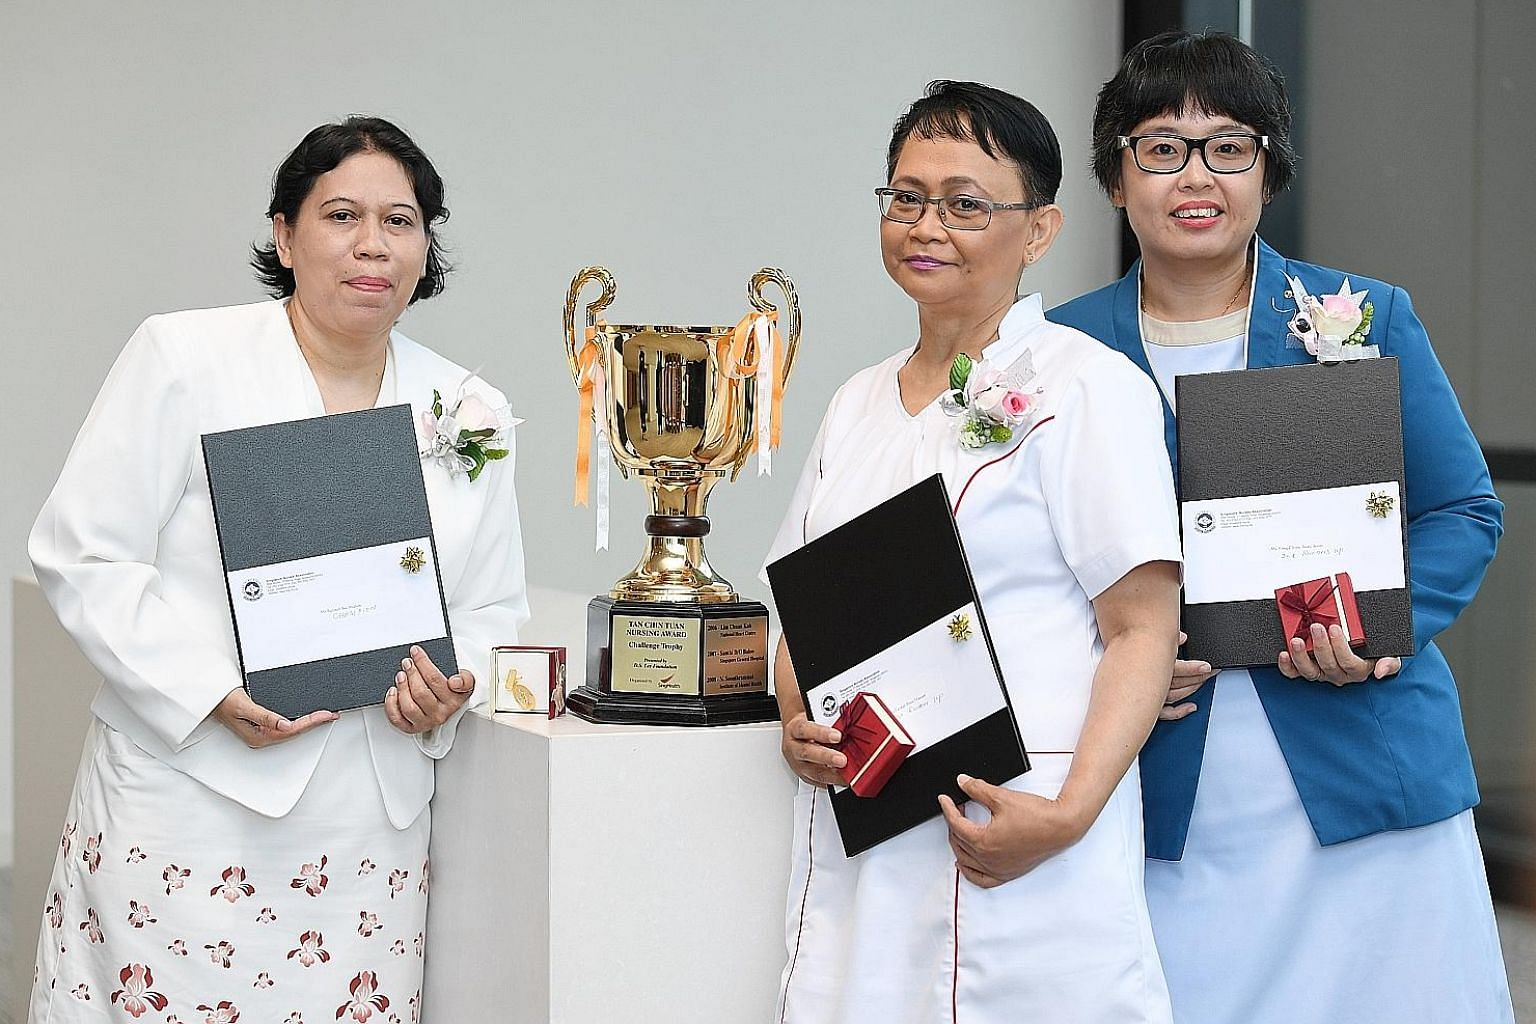 (From left) Tan Chin Tuan Nursing Award first-prize winner Rahinah Ibrahim of the Institute of Mental Health, second-prize winner Faridah Hassan of Ng Teng Fong General Hospital and third-prize winner Jenny Yong of the Home Nursing Foundation. Seven